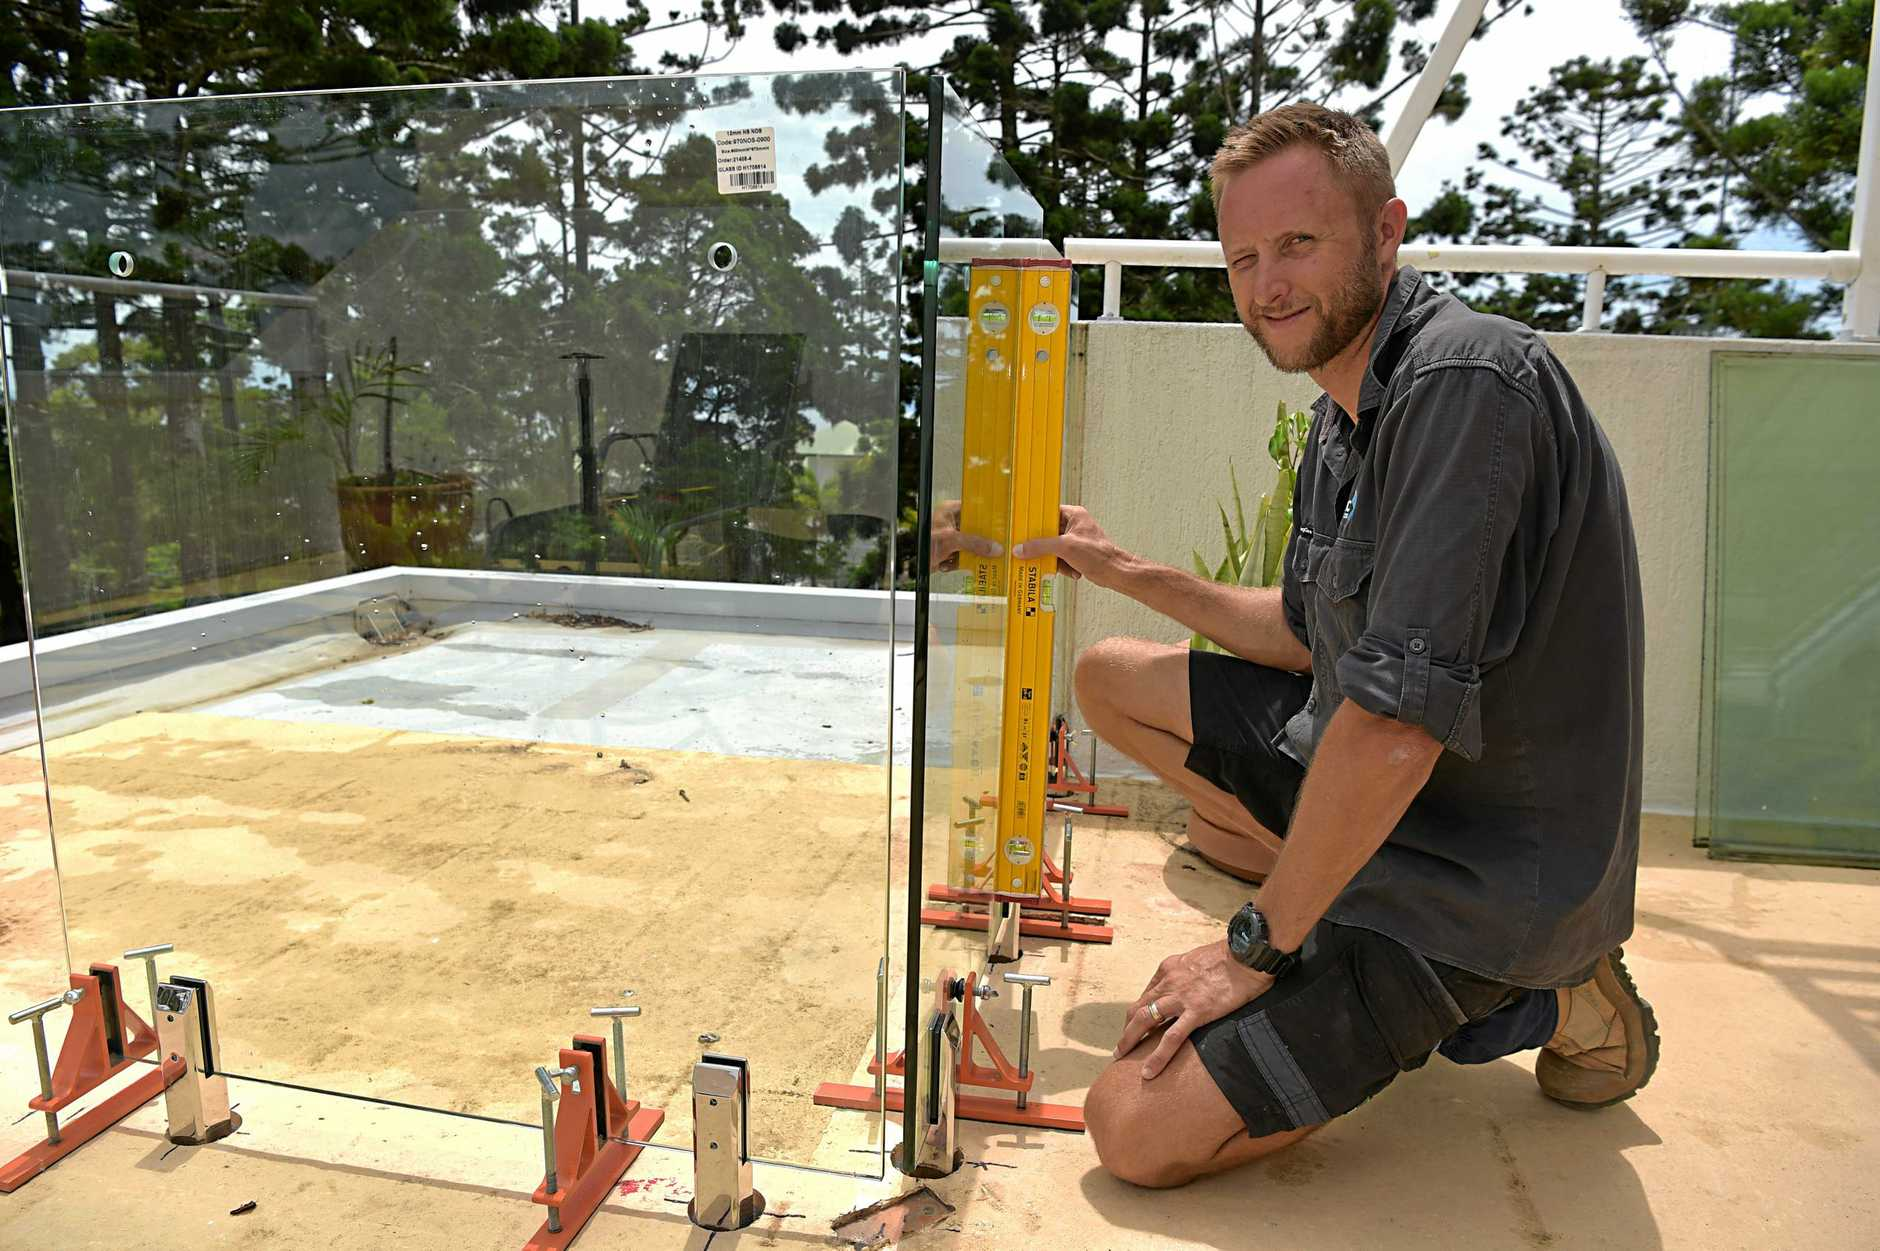 Coast pool fence and balustrade installer Luke Anstiss of Fab Tec has invented a tool that cuts the time to install glass fencing by two thirds. Hes using the product on a unit complex